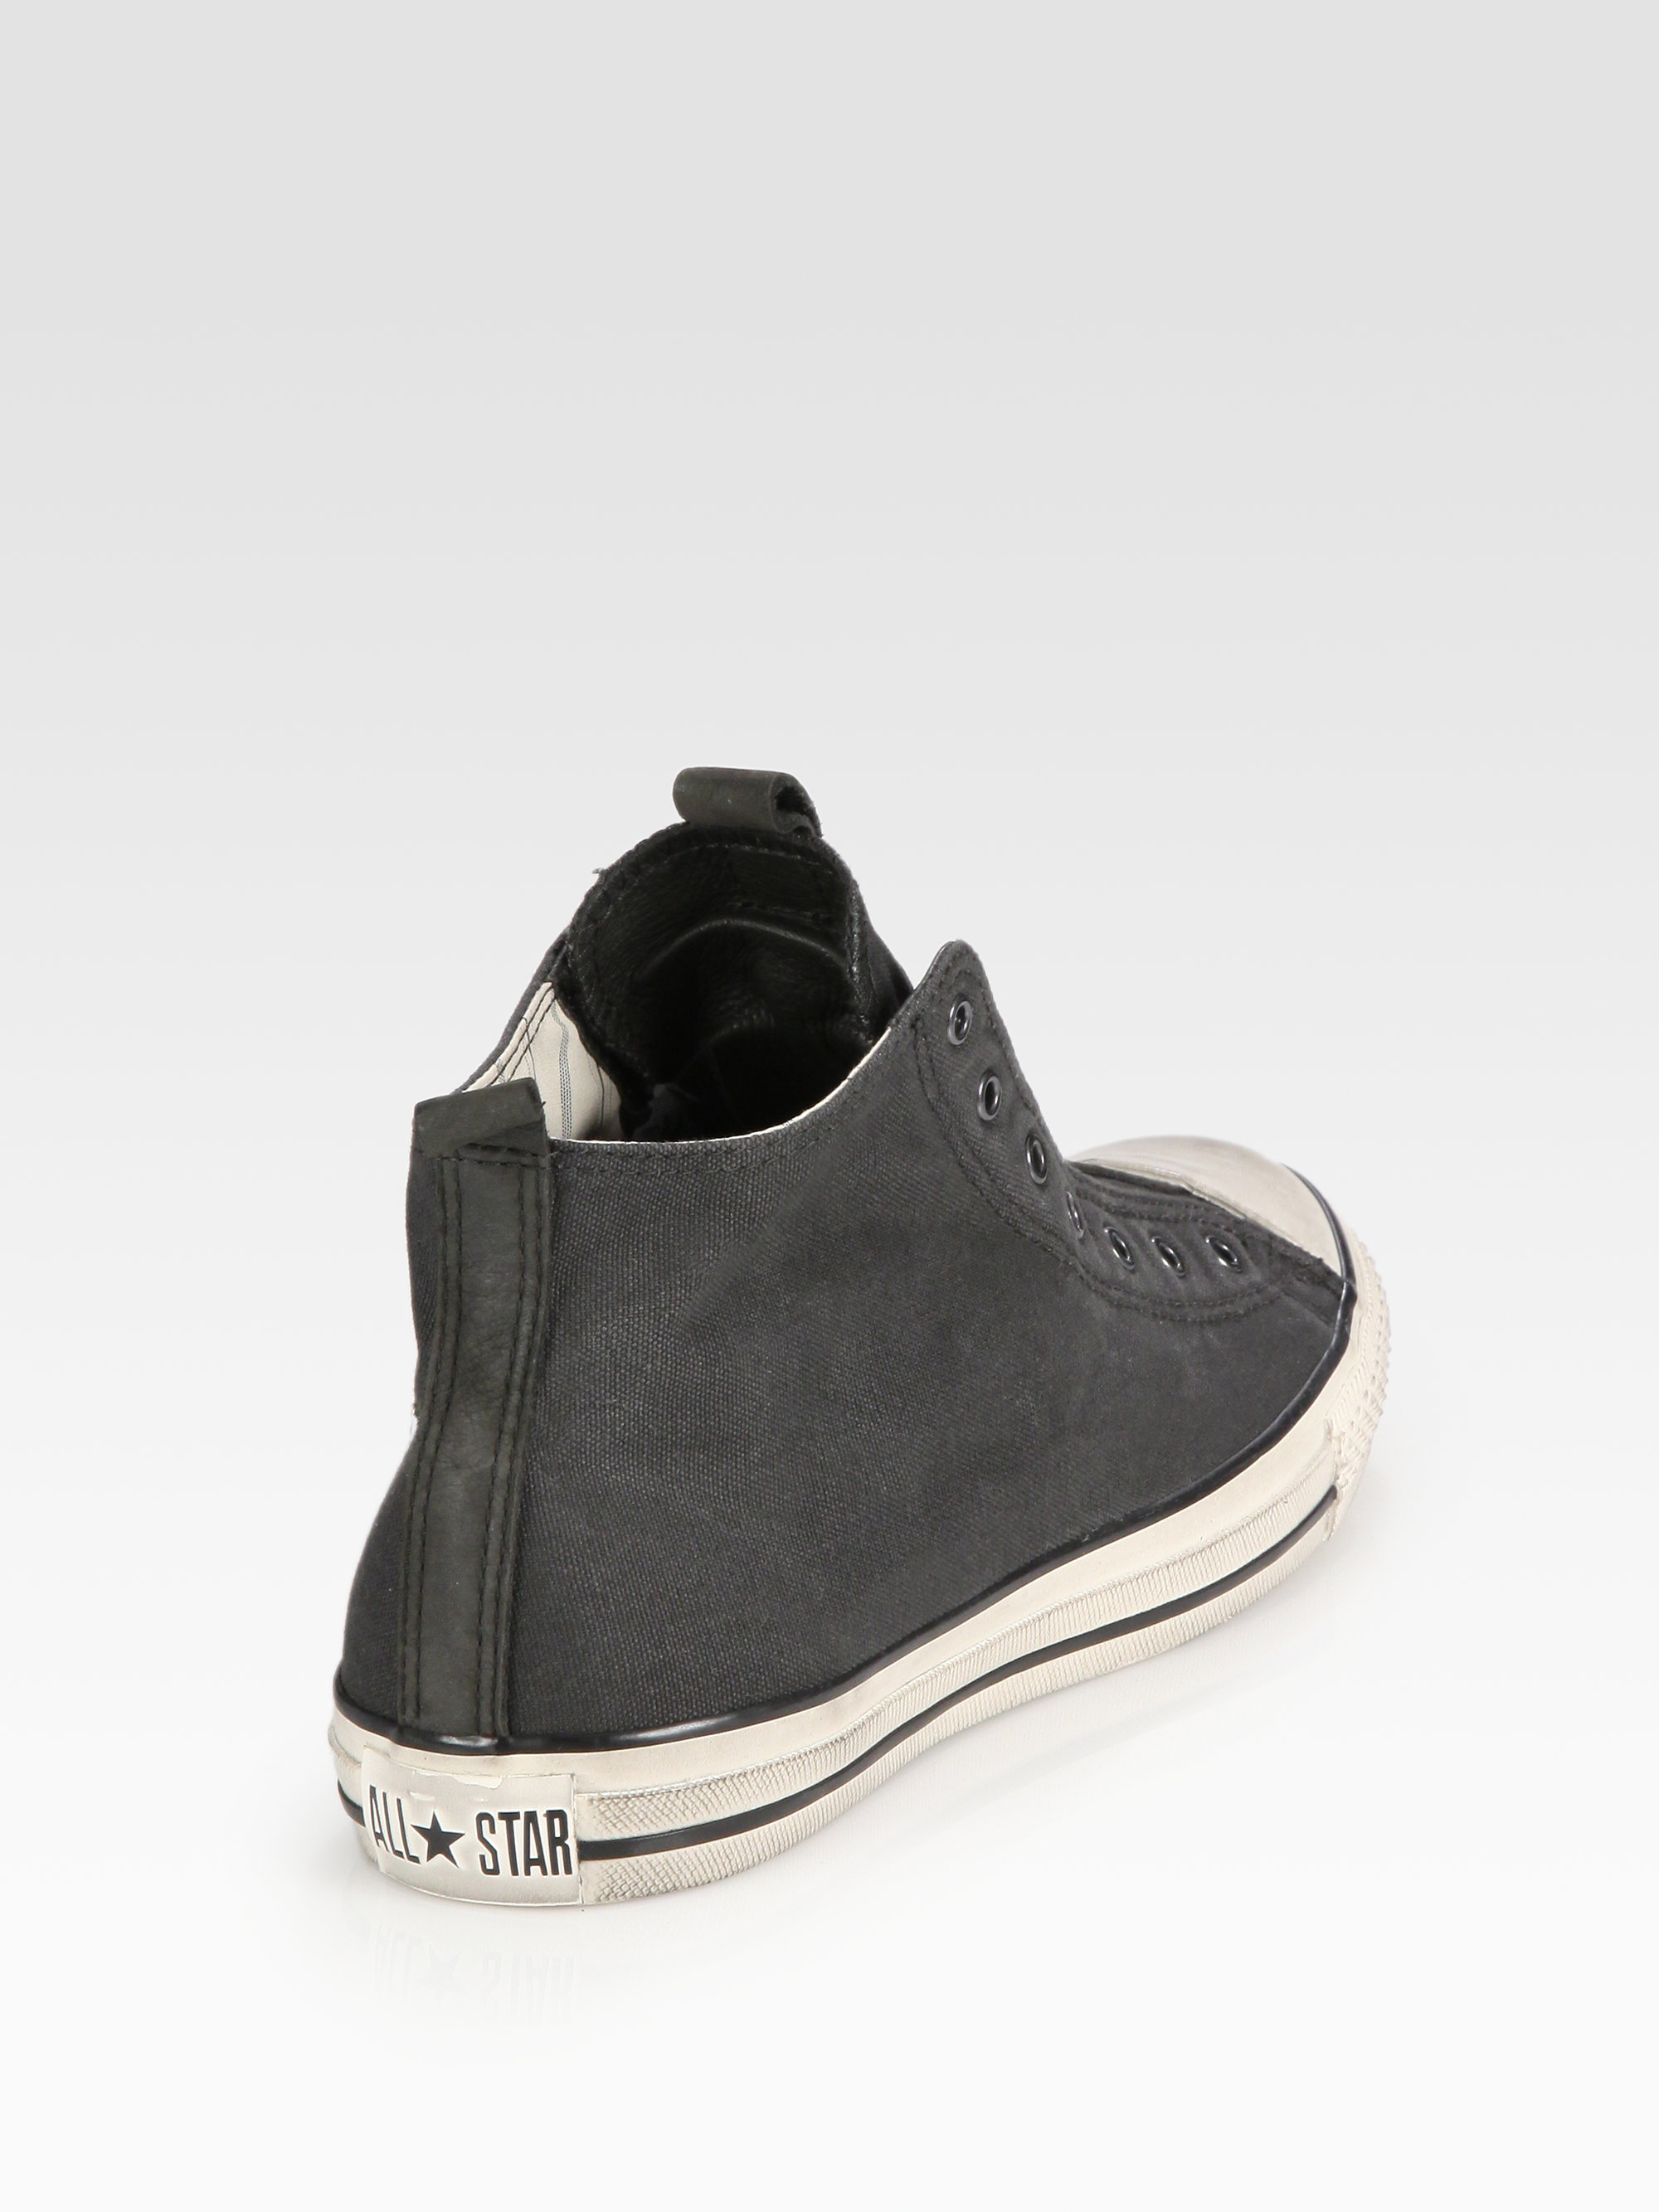 Converse John Varvatos Laceless Canvas Hightop Sneakers in ...